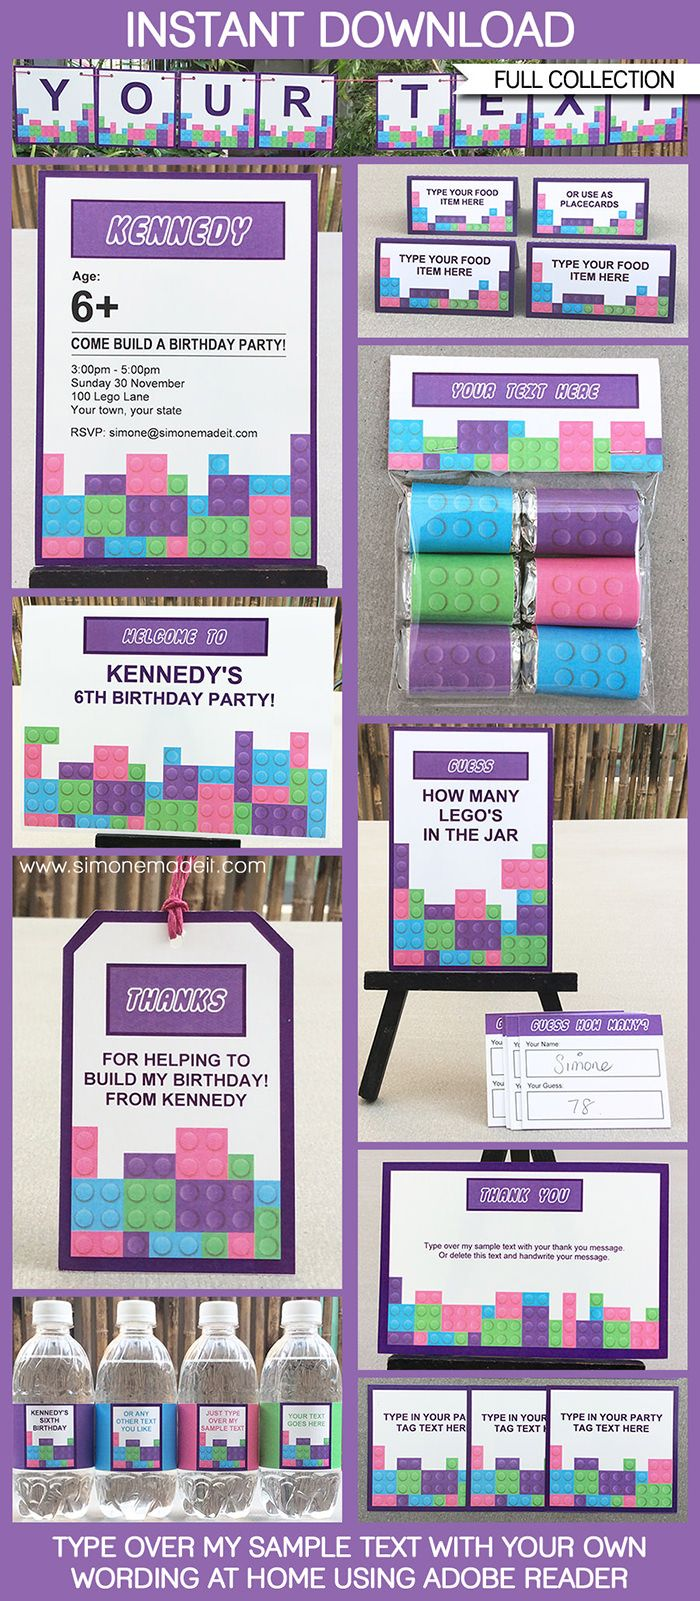 Lego Friends Party Printables, Invitations & Decorations | Editable Birthday Party Theme templates | INSTANT DOWNLOAD $12.50 via SIMONEmadeit.com